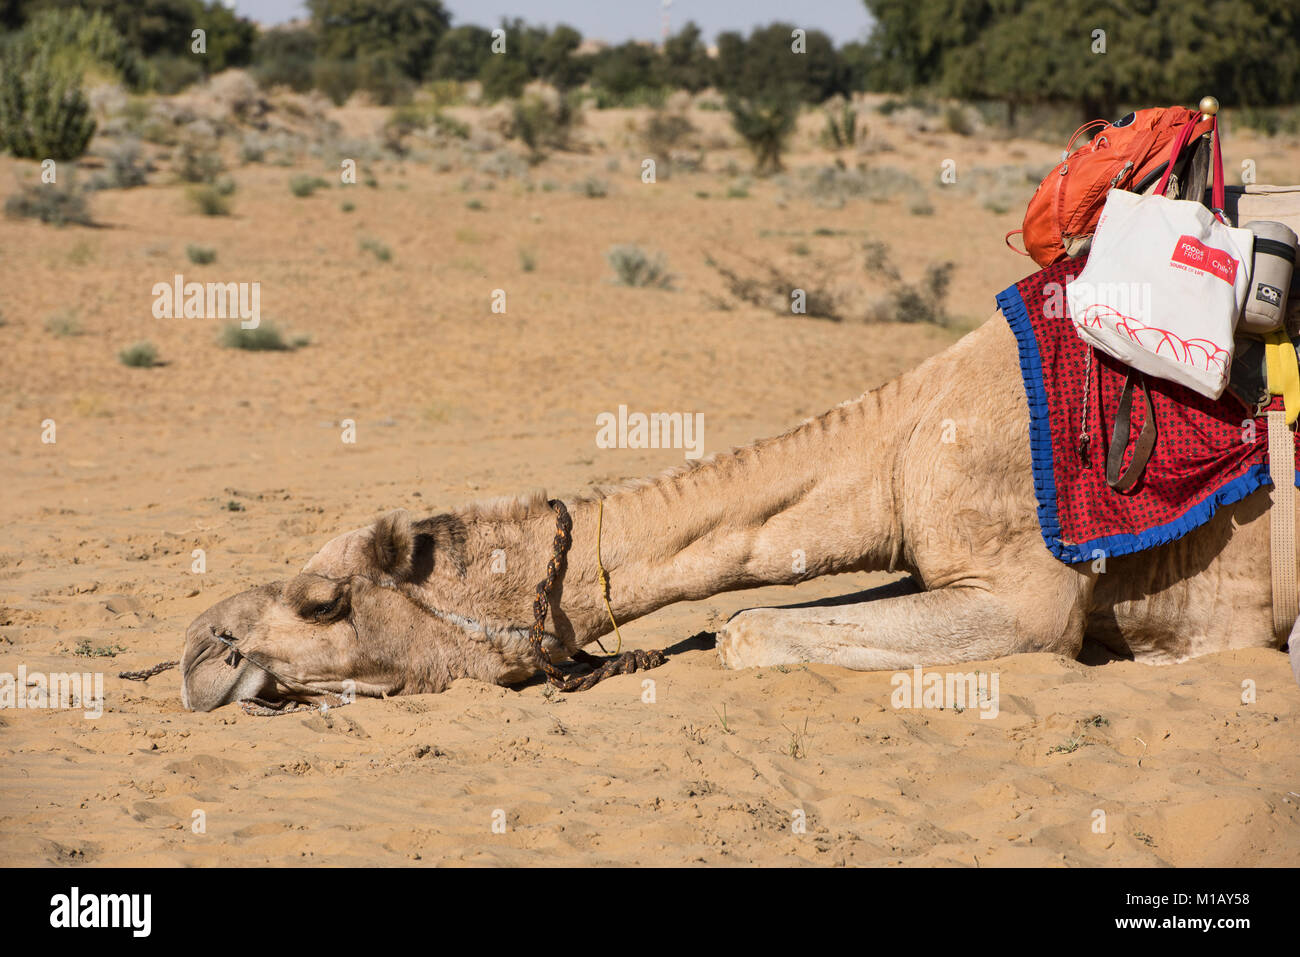 Tired camel in the Thar Desert, Rajasthan, India - Stock Image